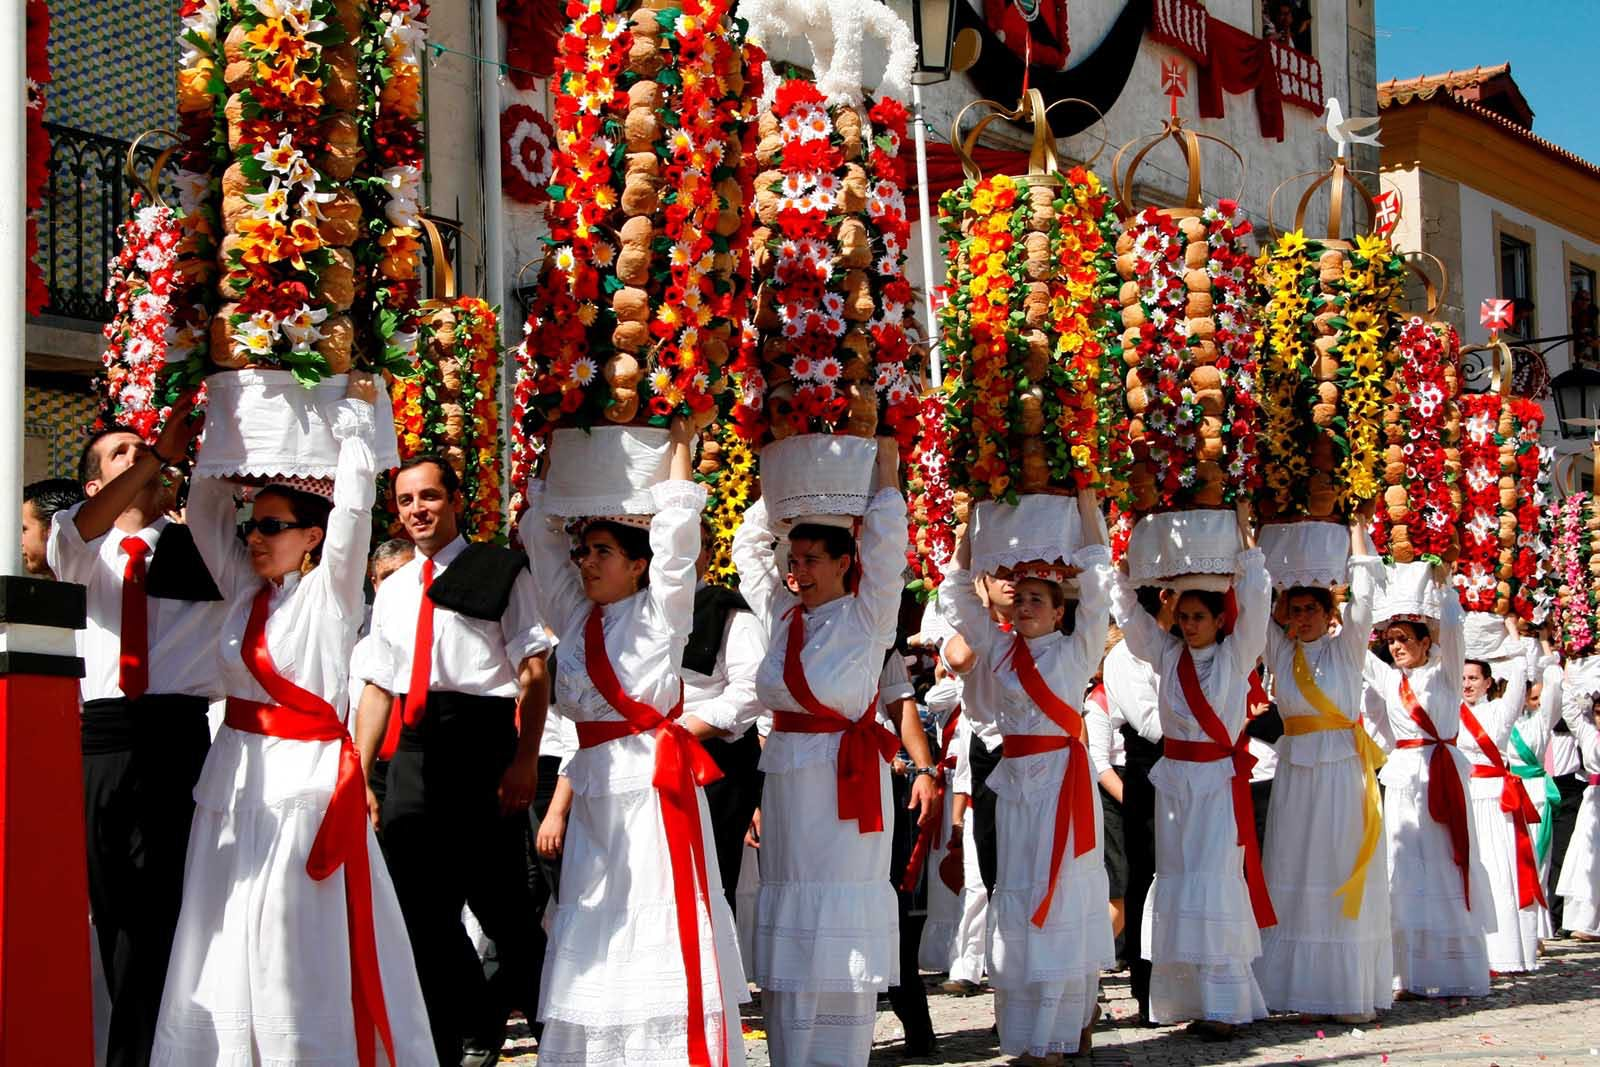 Elegant women parading with flower trays on their heads at the Festival of the Trays in Tomar, Portugal.